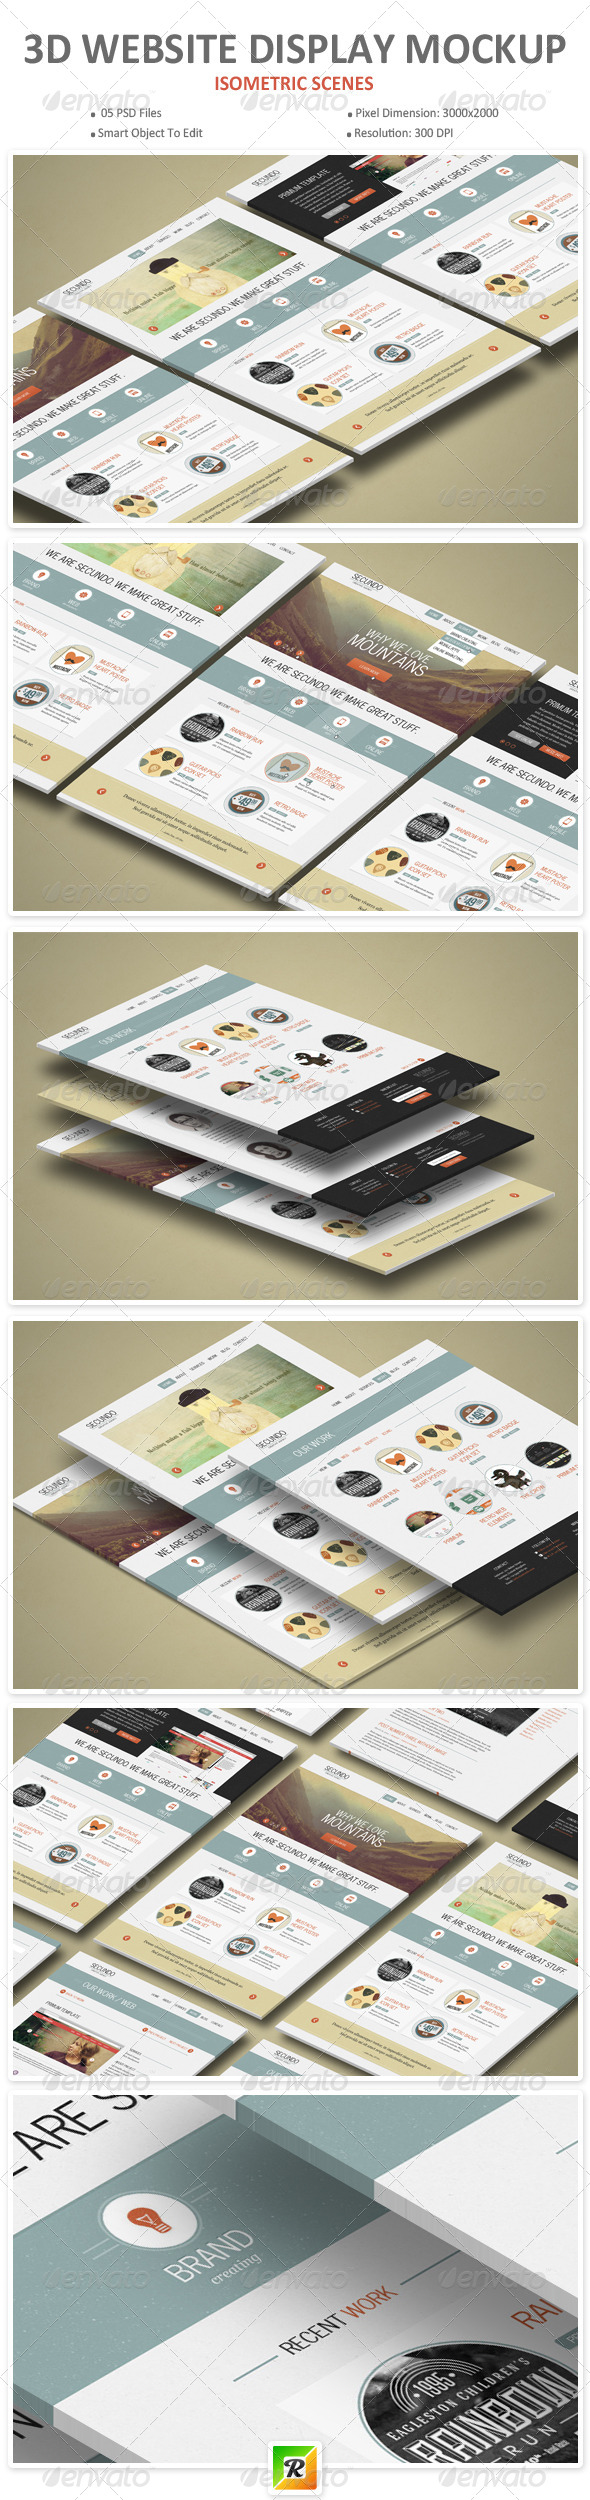 3d Website Display Mockup